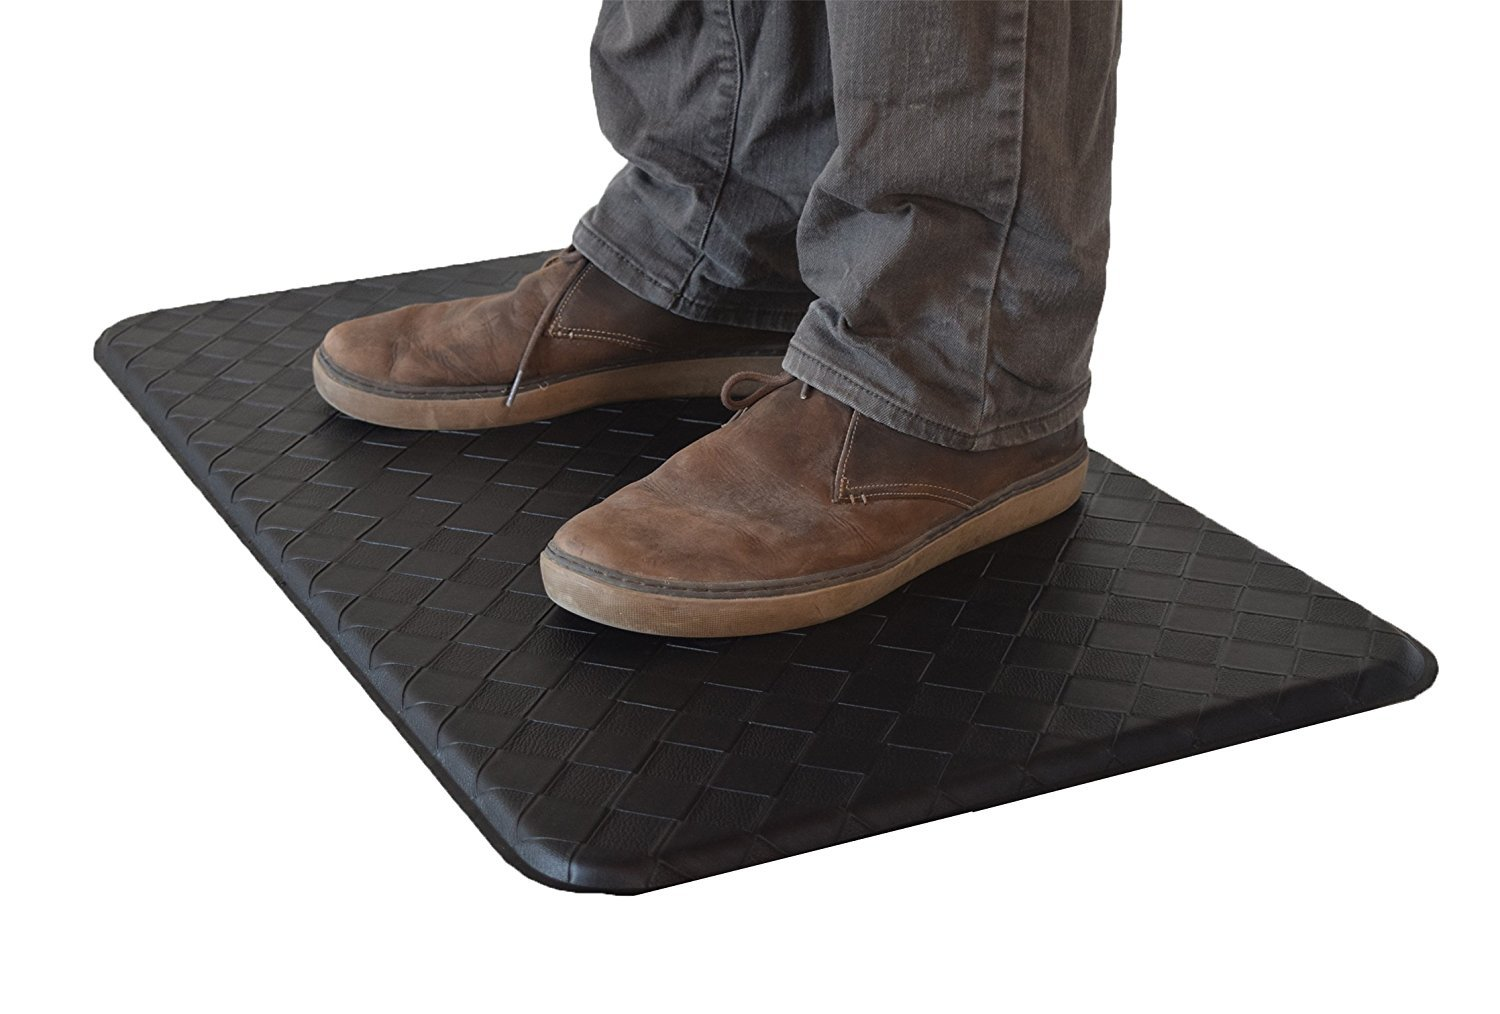 AnthroDesk standing desk anti-fatigue comfort floor mat (Black 18'' x 30'') by AnthroDesk